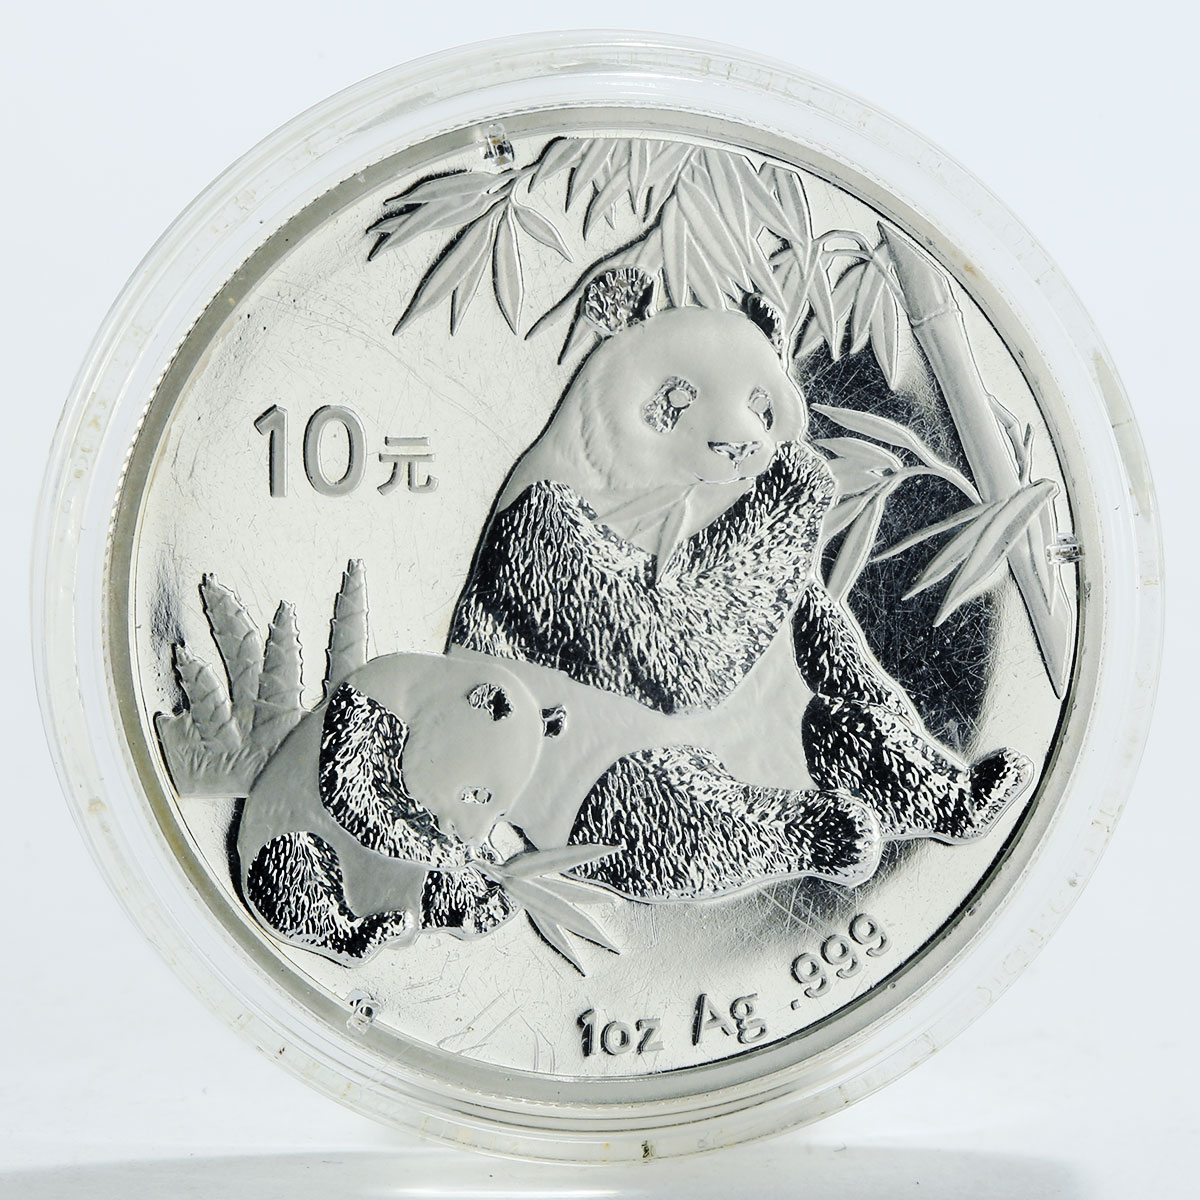 China 10 yuan Panda Series proof silver coin 2007